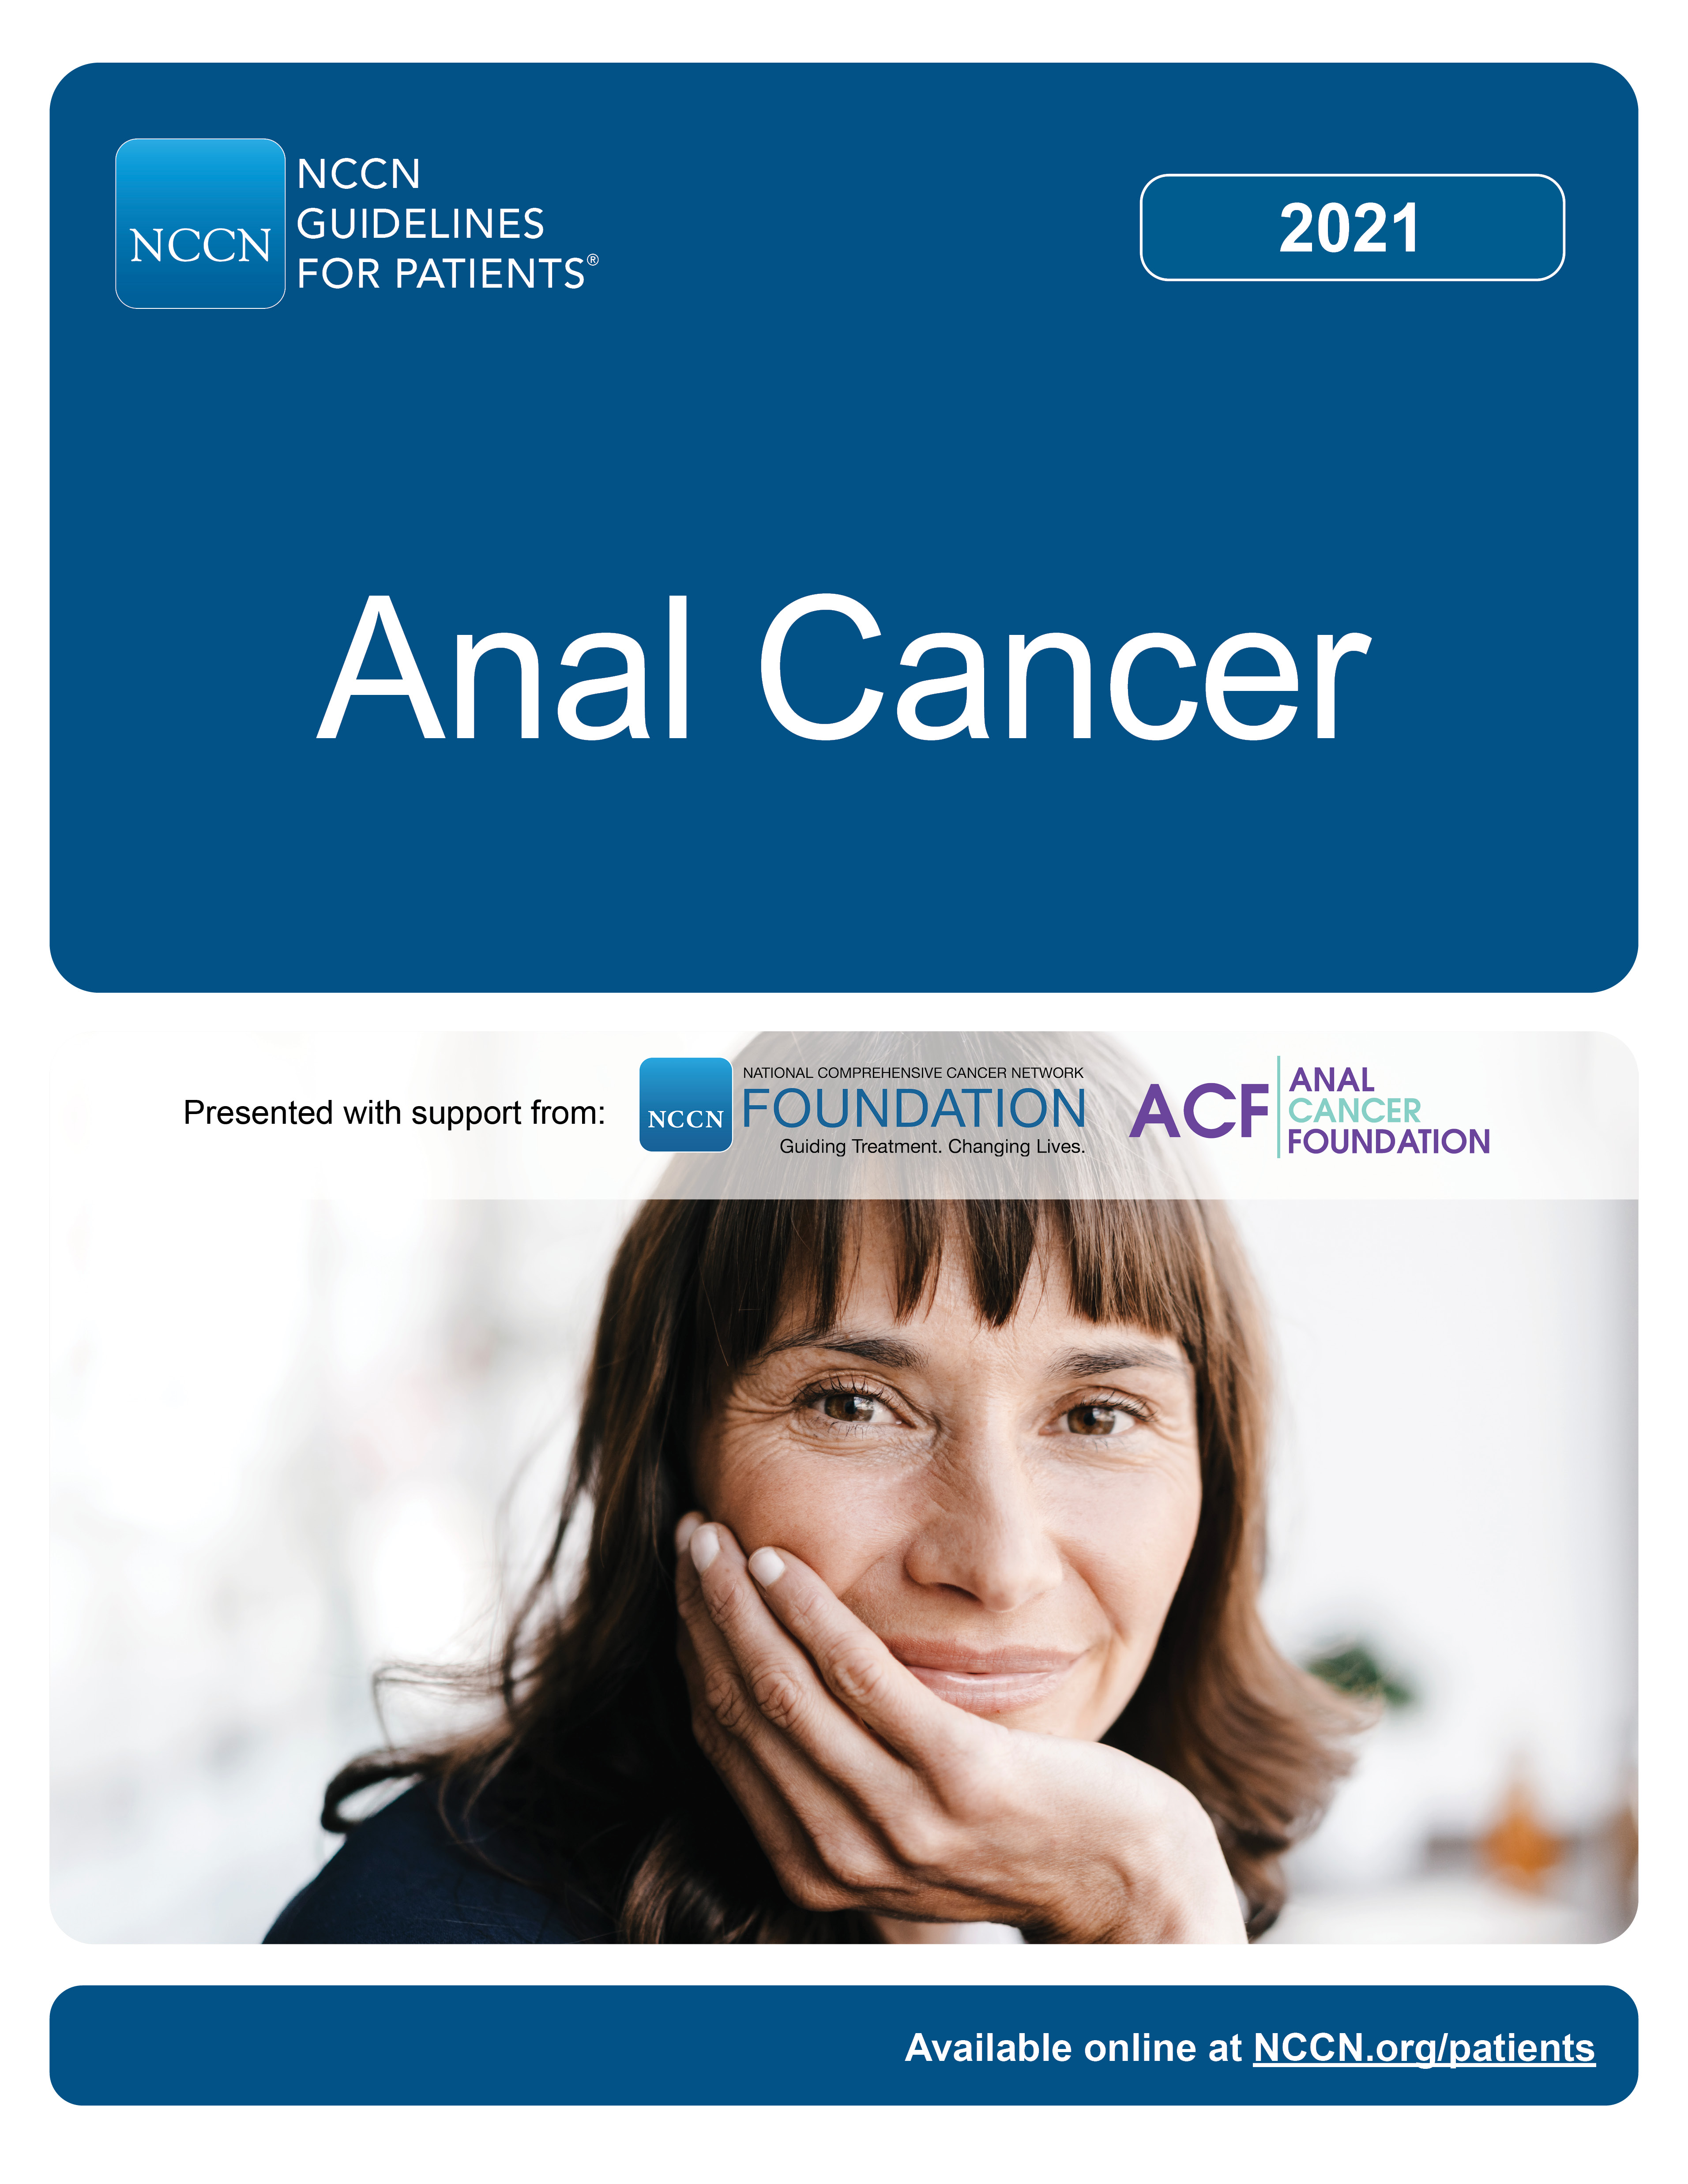 NCCN Guidelines for Patients: Anal Cancer